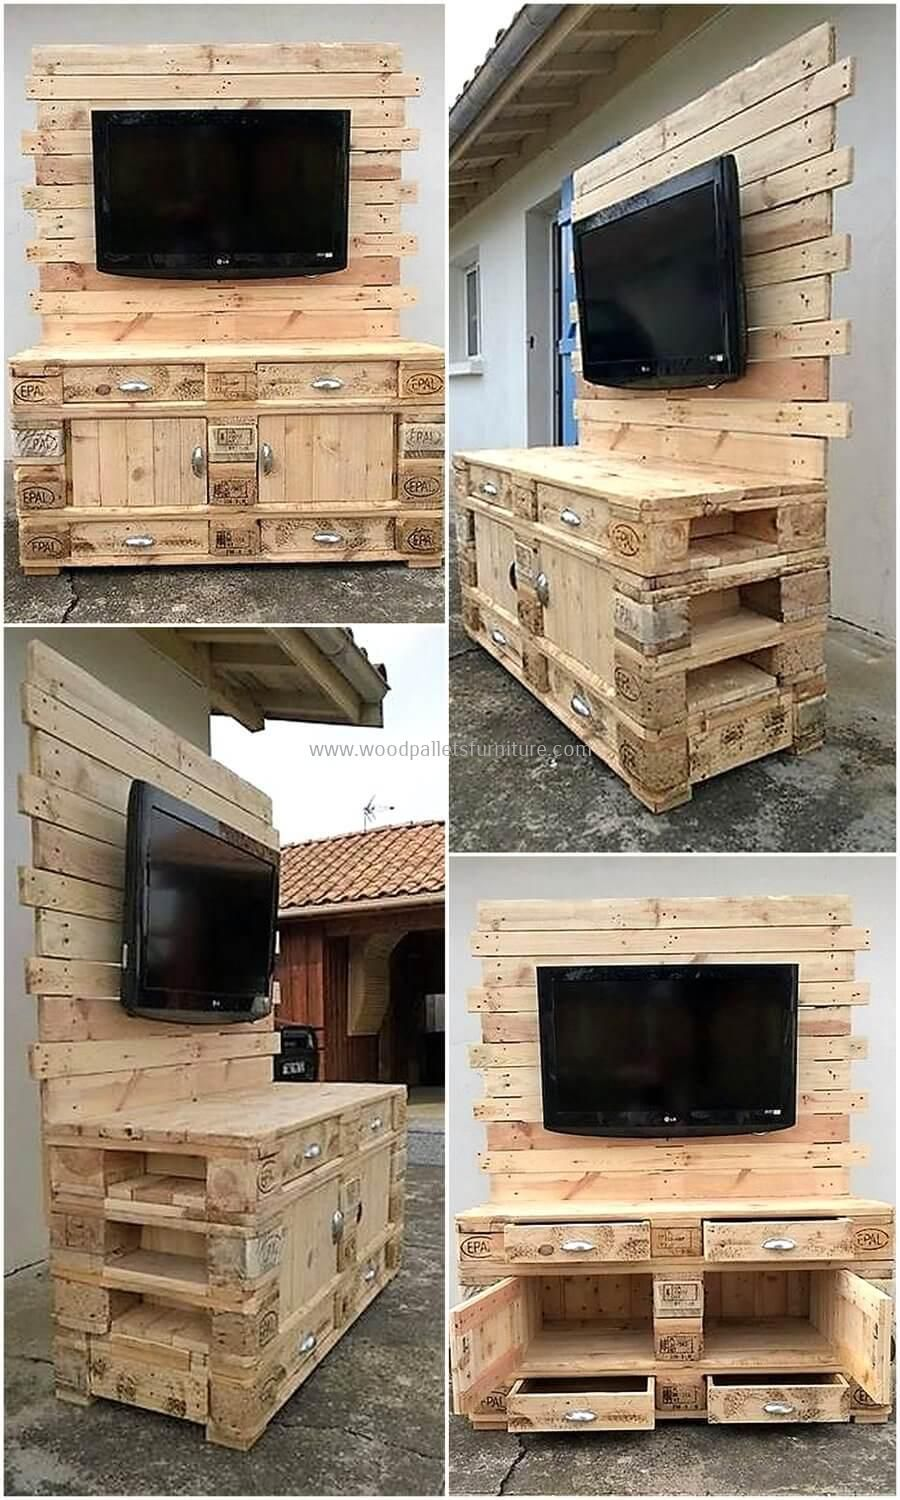 Wooden Pallets Made Tv Console Wood Pallet Furniture Wood Pallet Furniture Wooden Pallets Wooden Pallet Projects